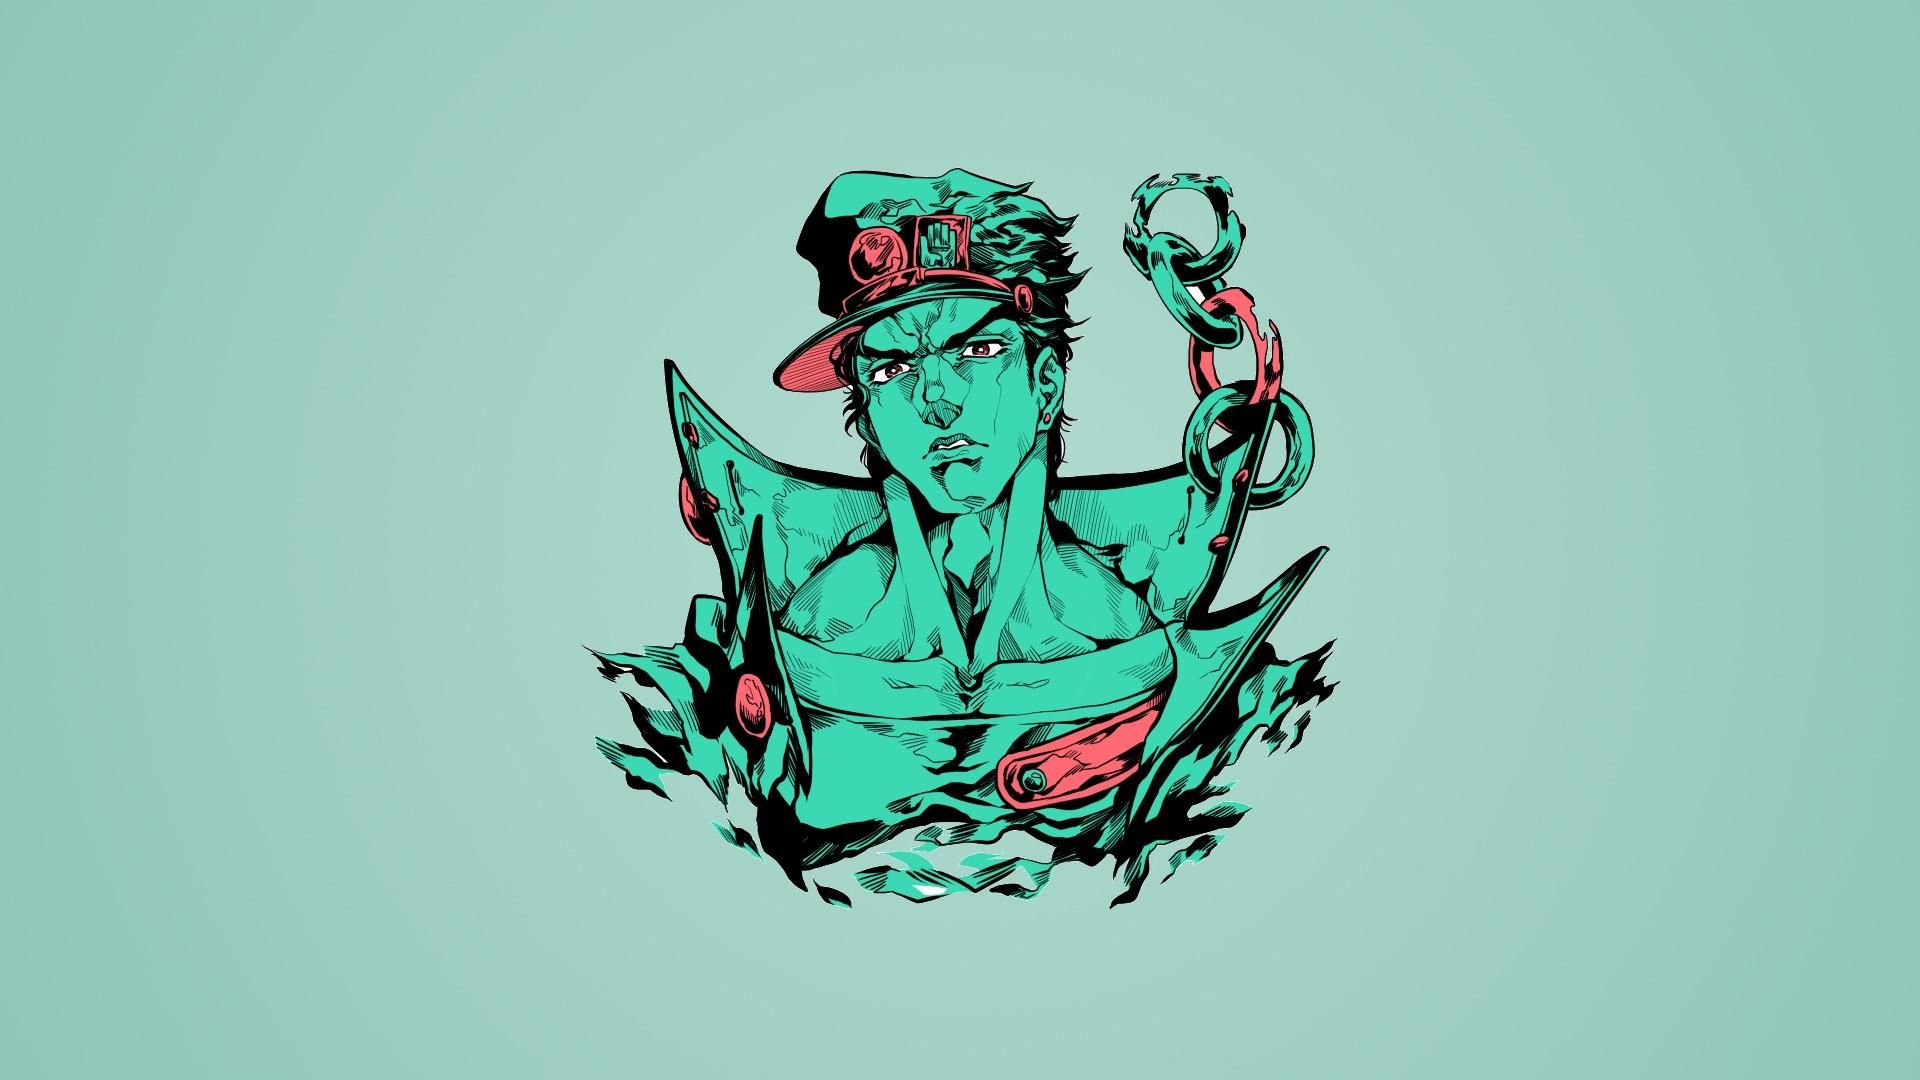 jotaro kujo wallpaper 1920x1080 reddit hd wallpapers in 2018